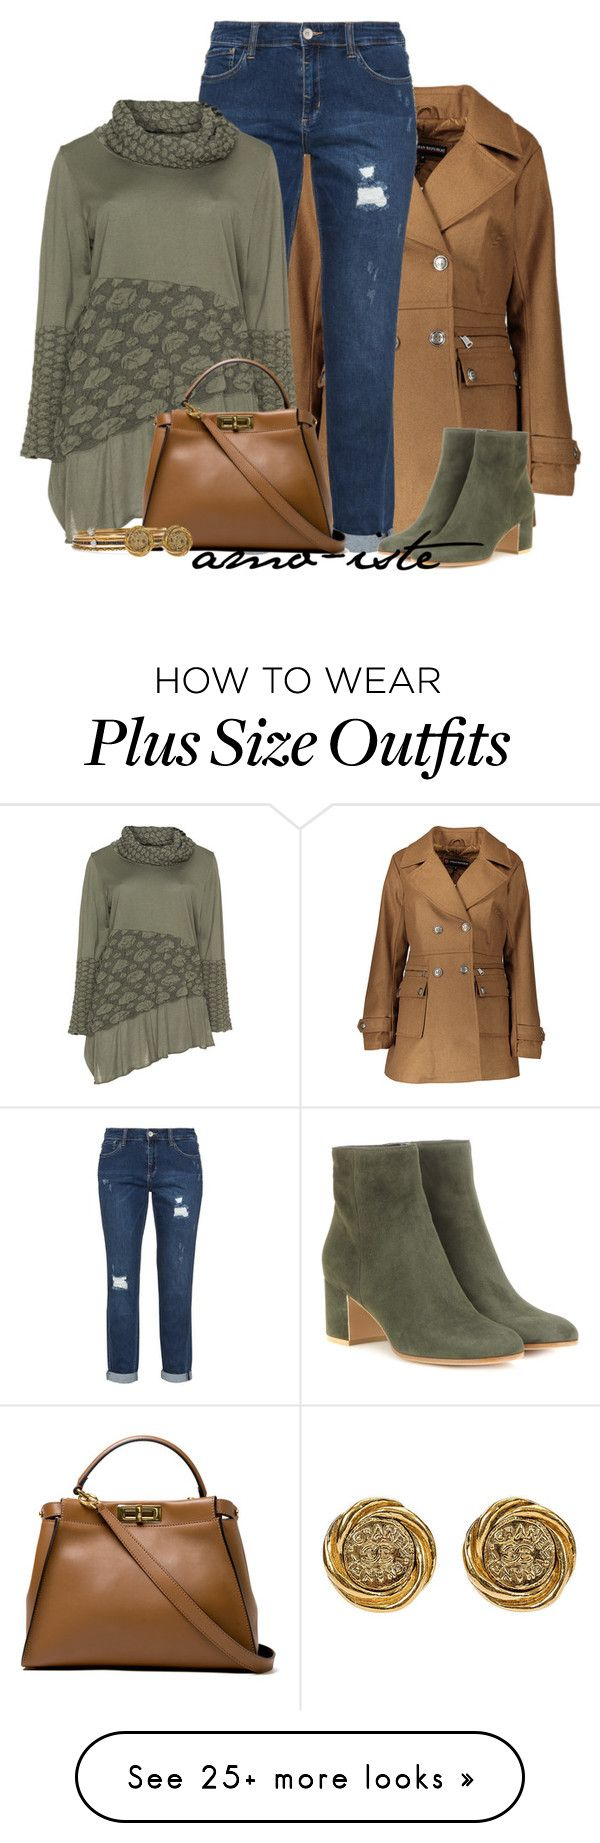 """""""Peacoat - Plus Size"""" by amo-iste on Polyvore featuring Urban Republic, Isolde Roth, Fendi, Gianvito Rossi, Alexander McQueen and plus size clothing"""